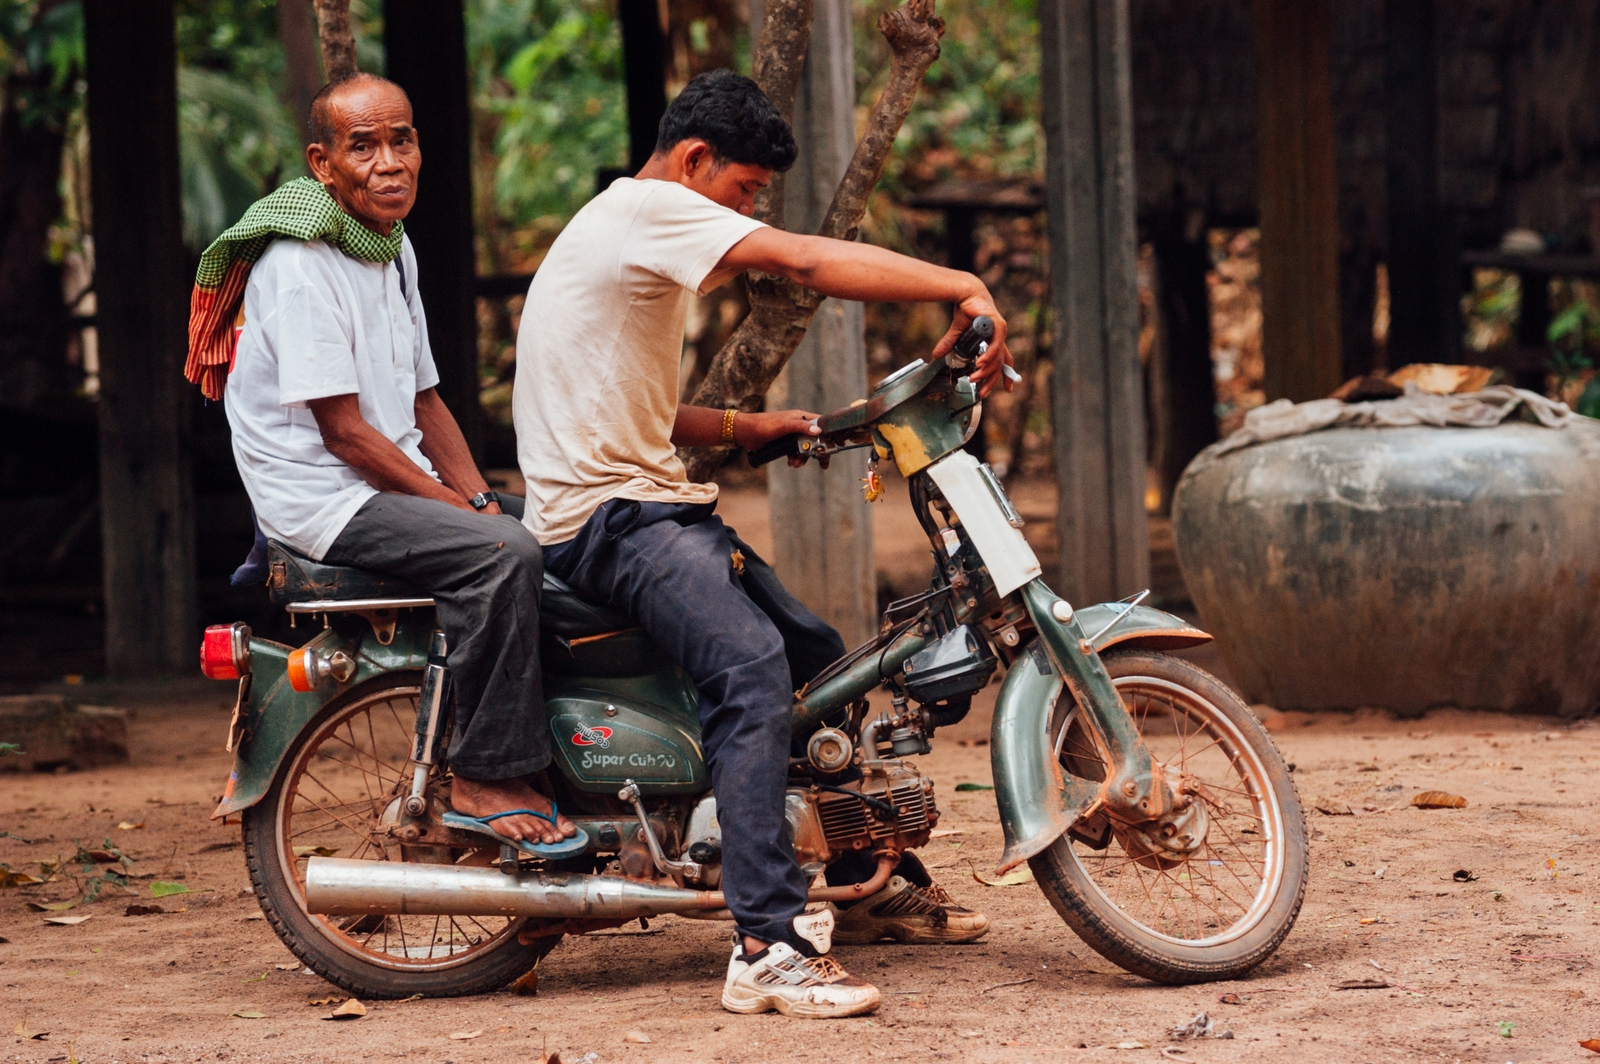 People of Cambodia - Photo 3940